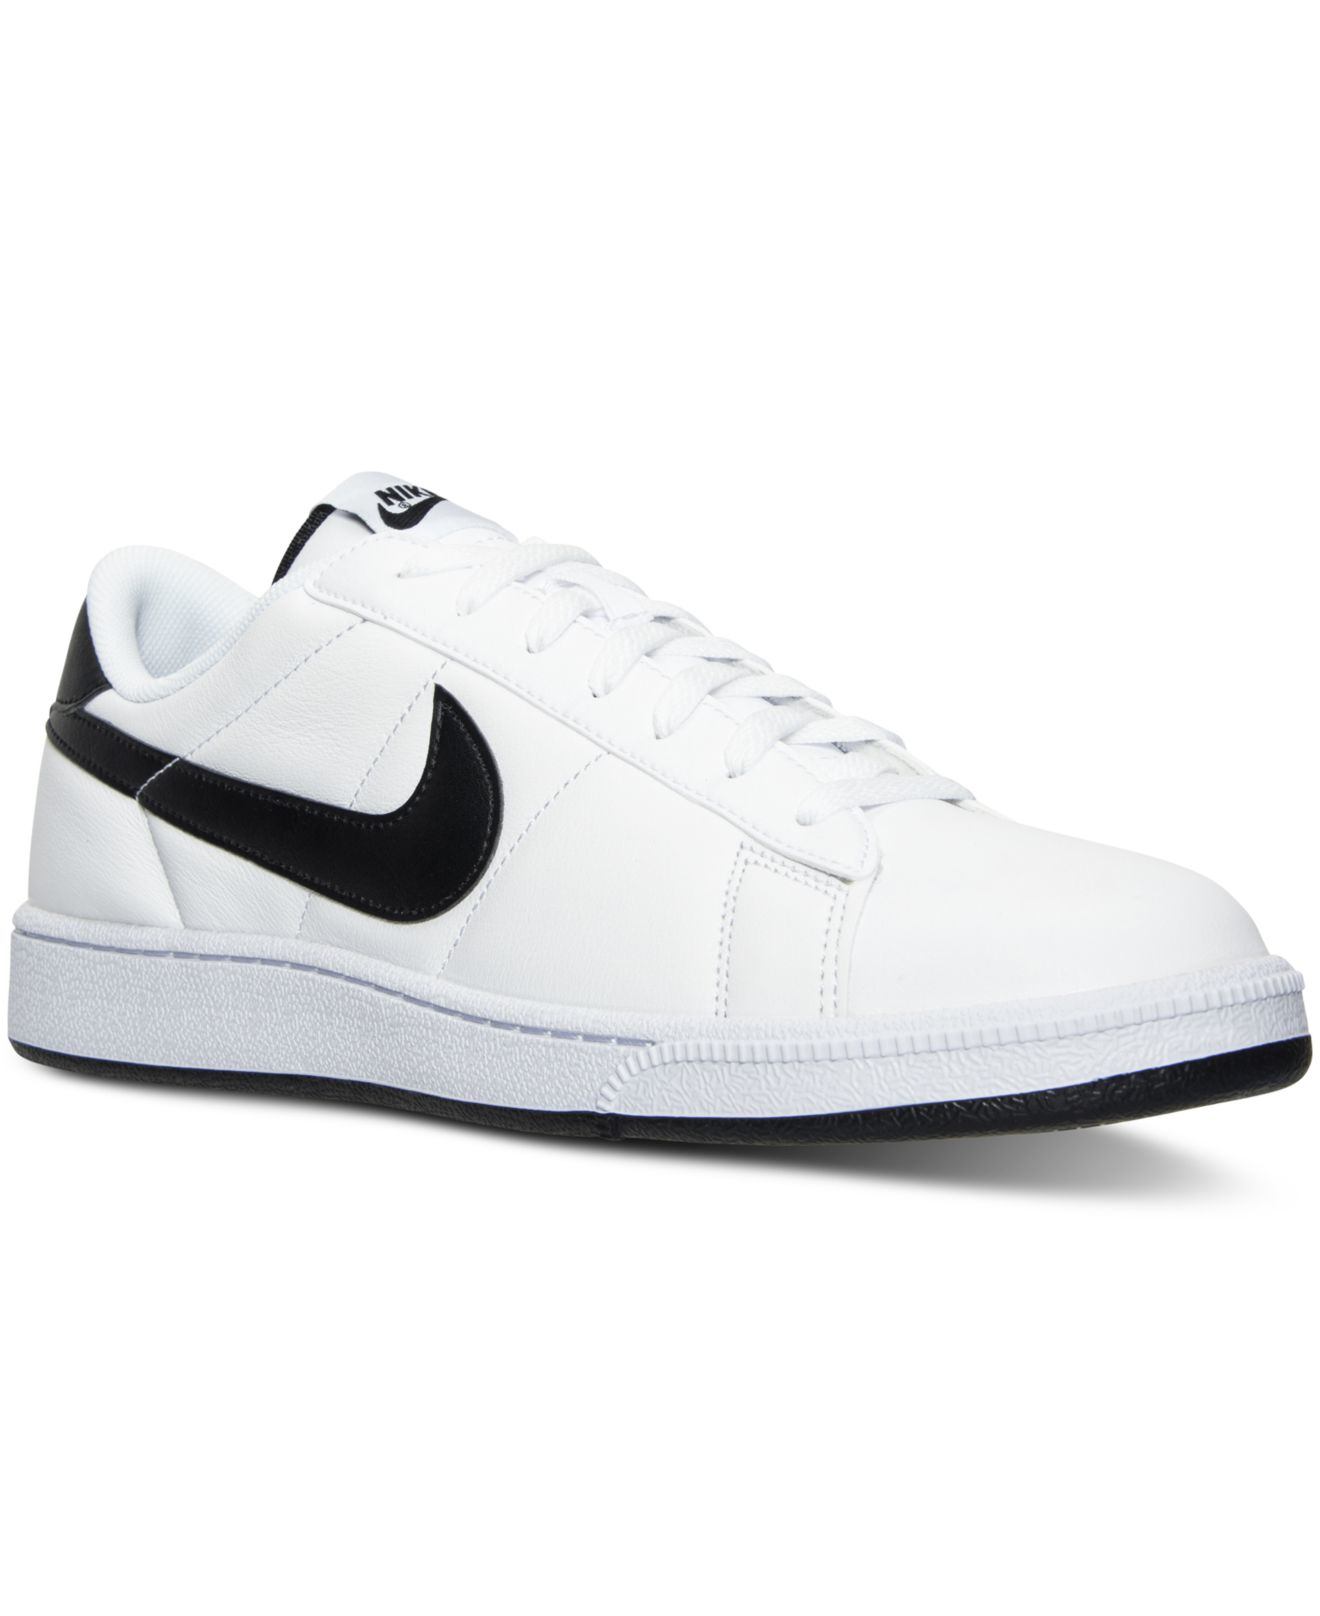 nike s tennis classic casual sneakers from finish line